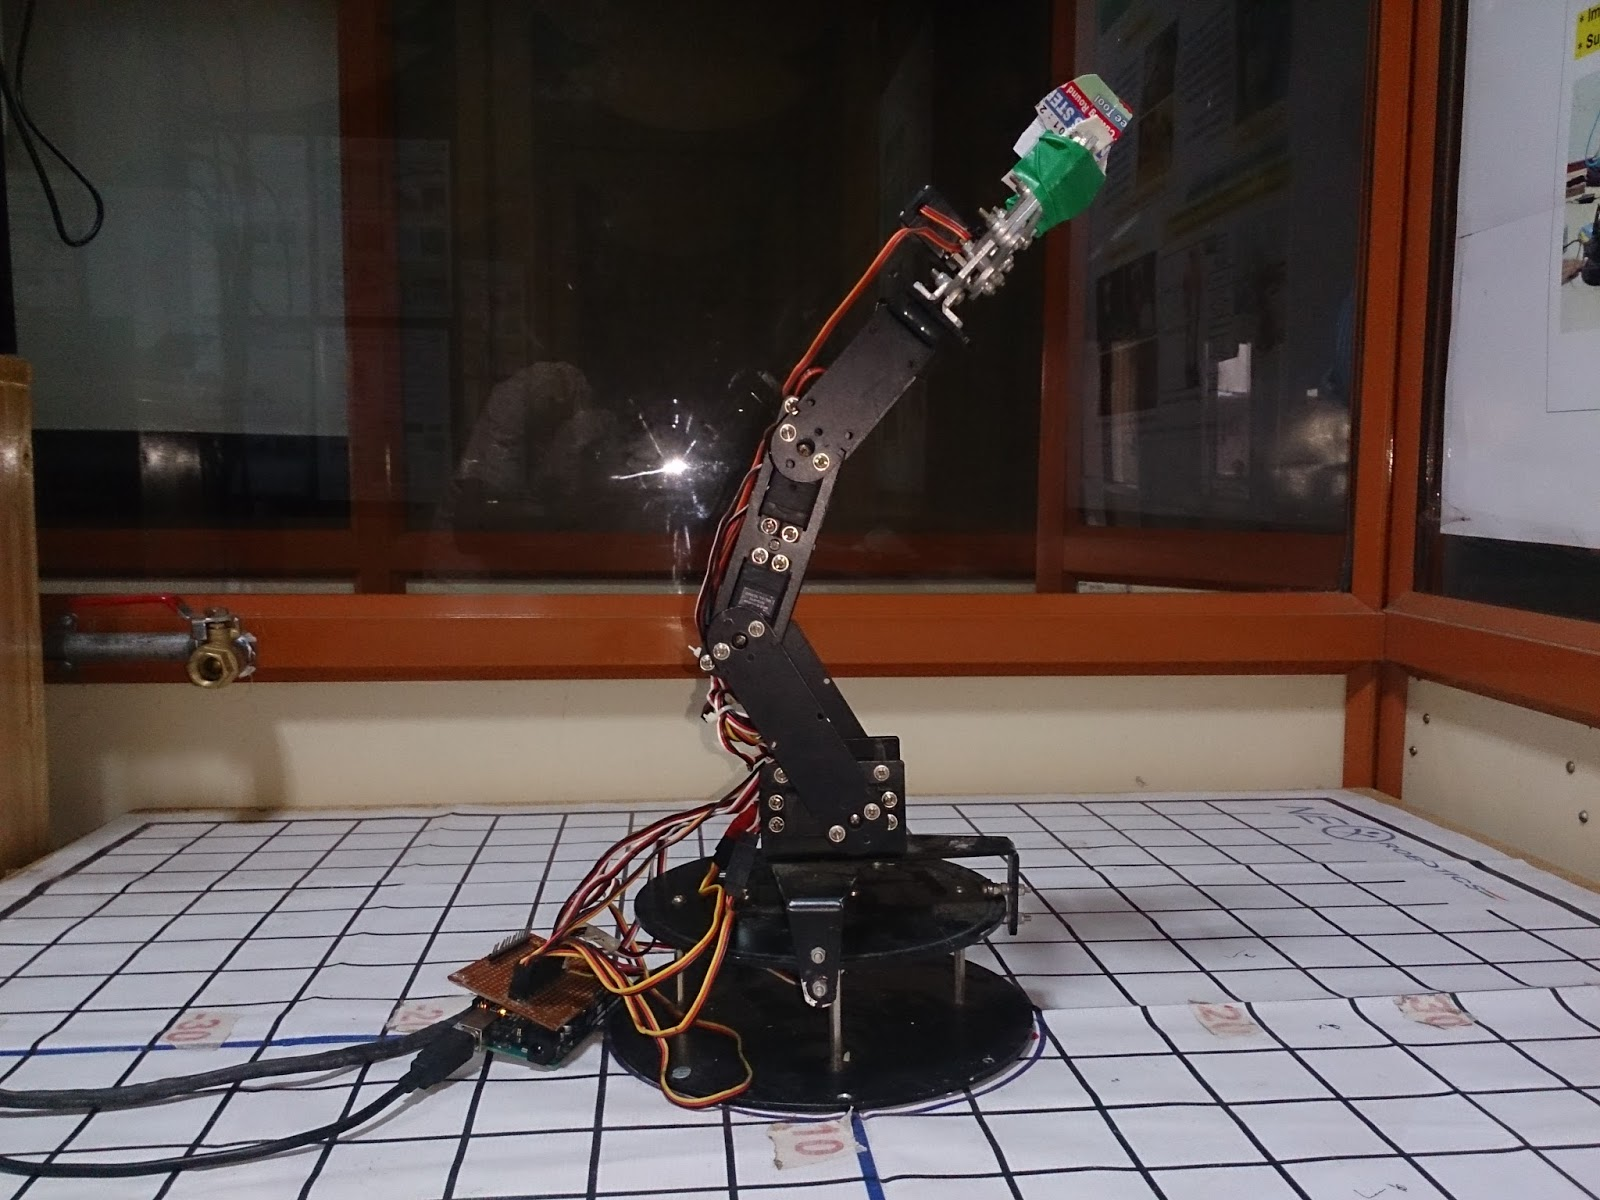 Robotics: Vision based pick and place Robotic arm